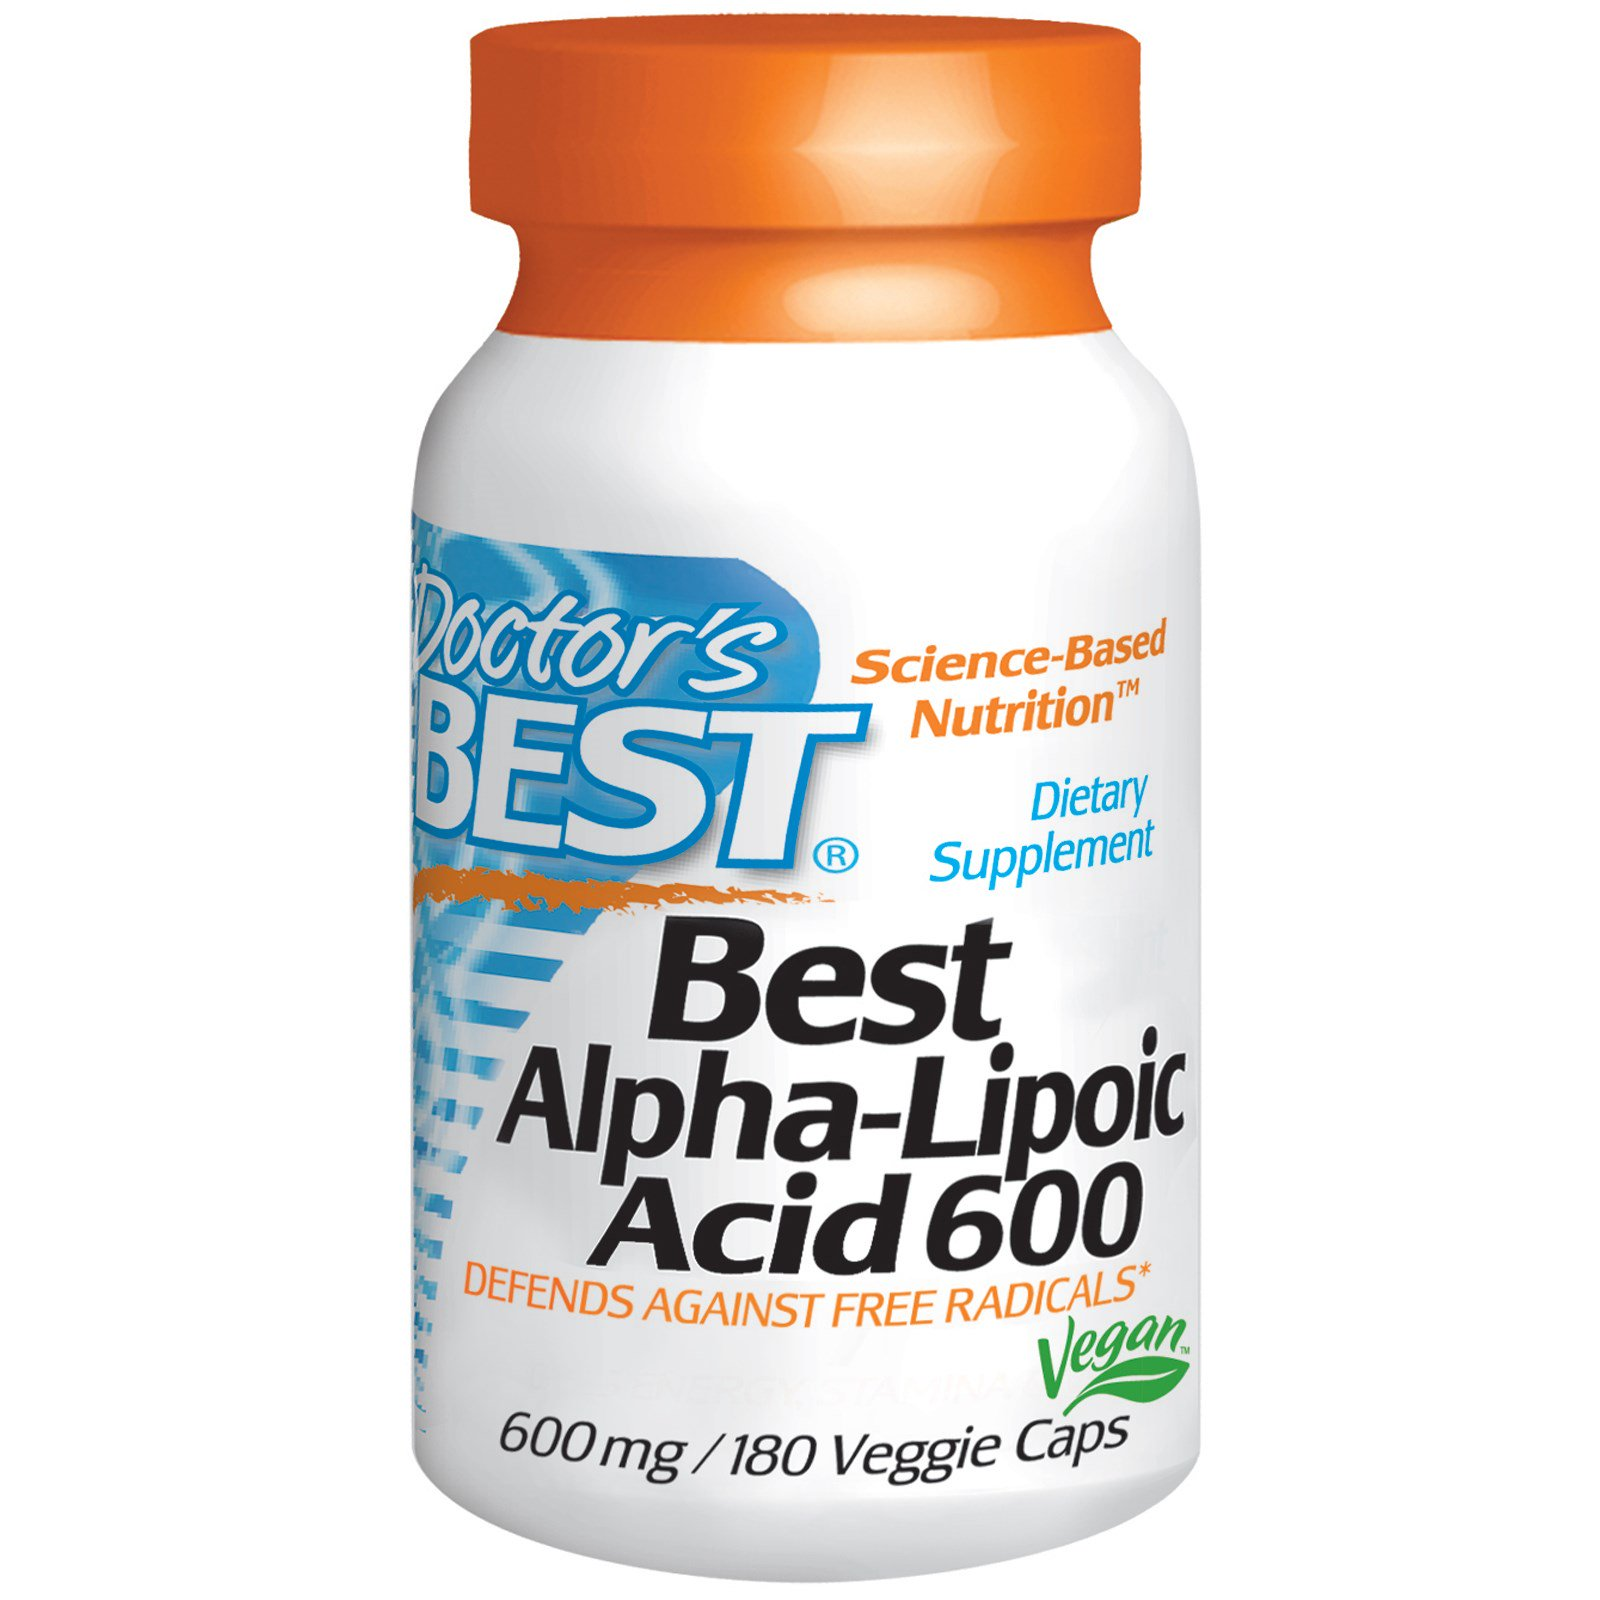 Doctor's Best, Best Alpha-Lipoic Acid, 600 Mg, 180 Veggie